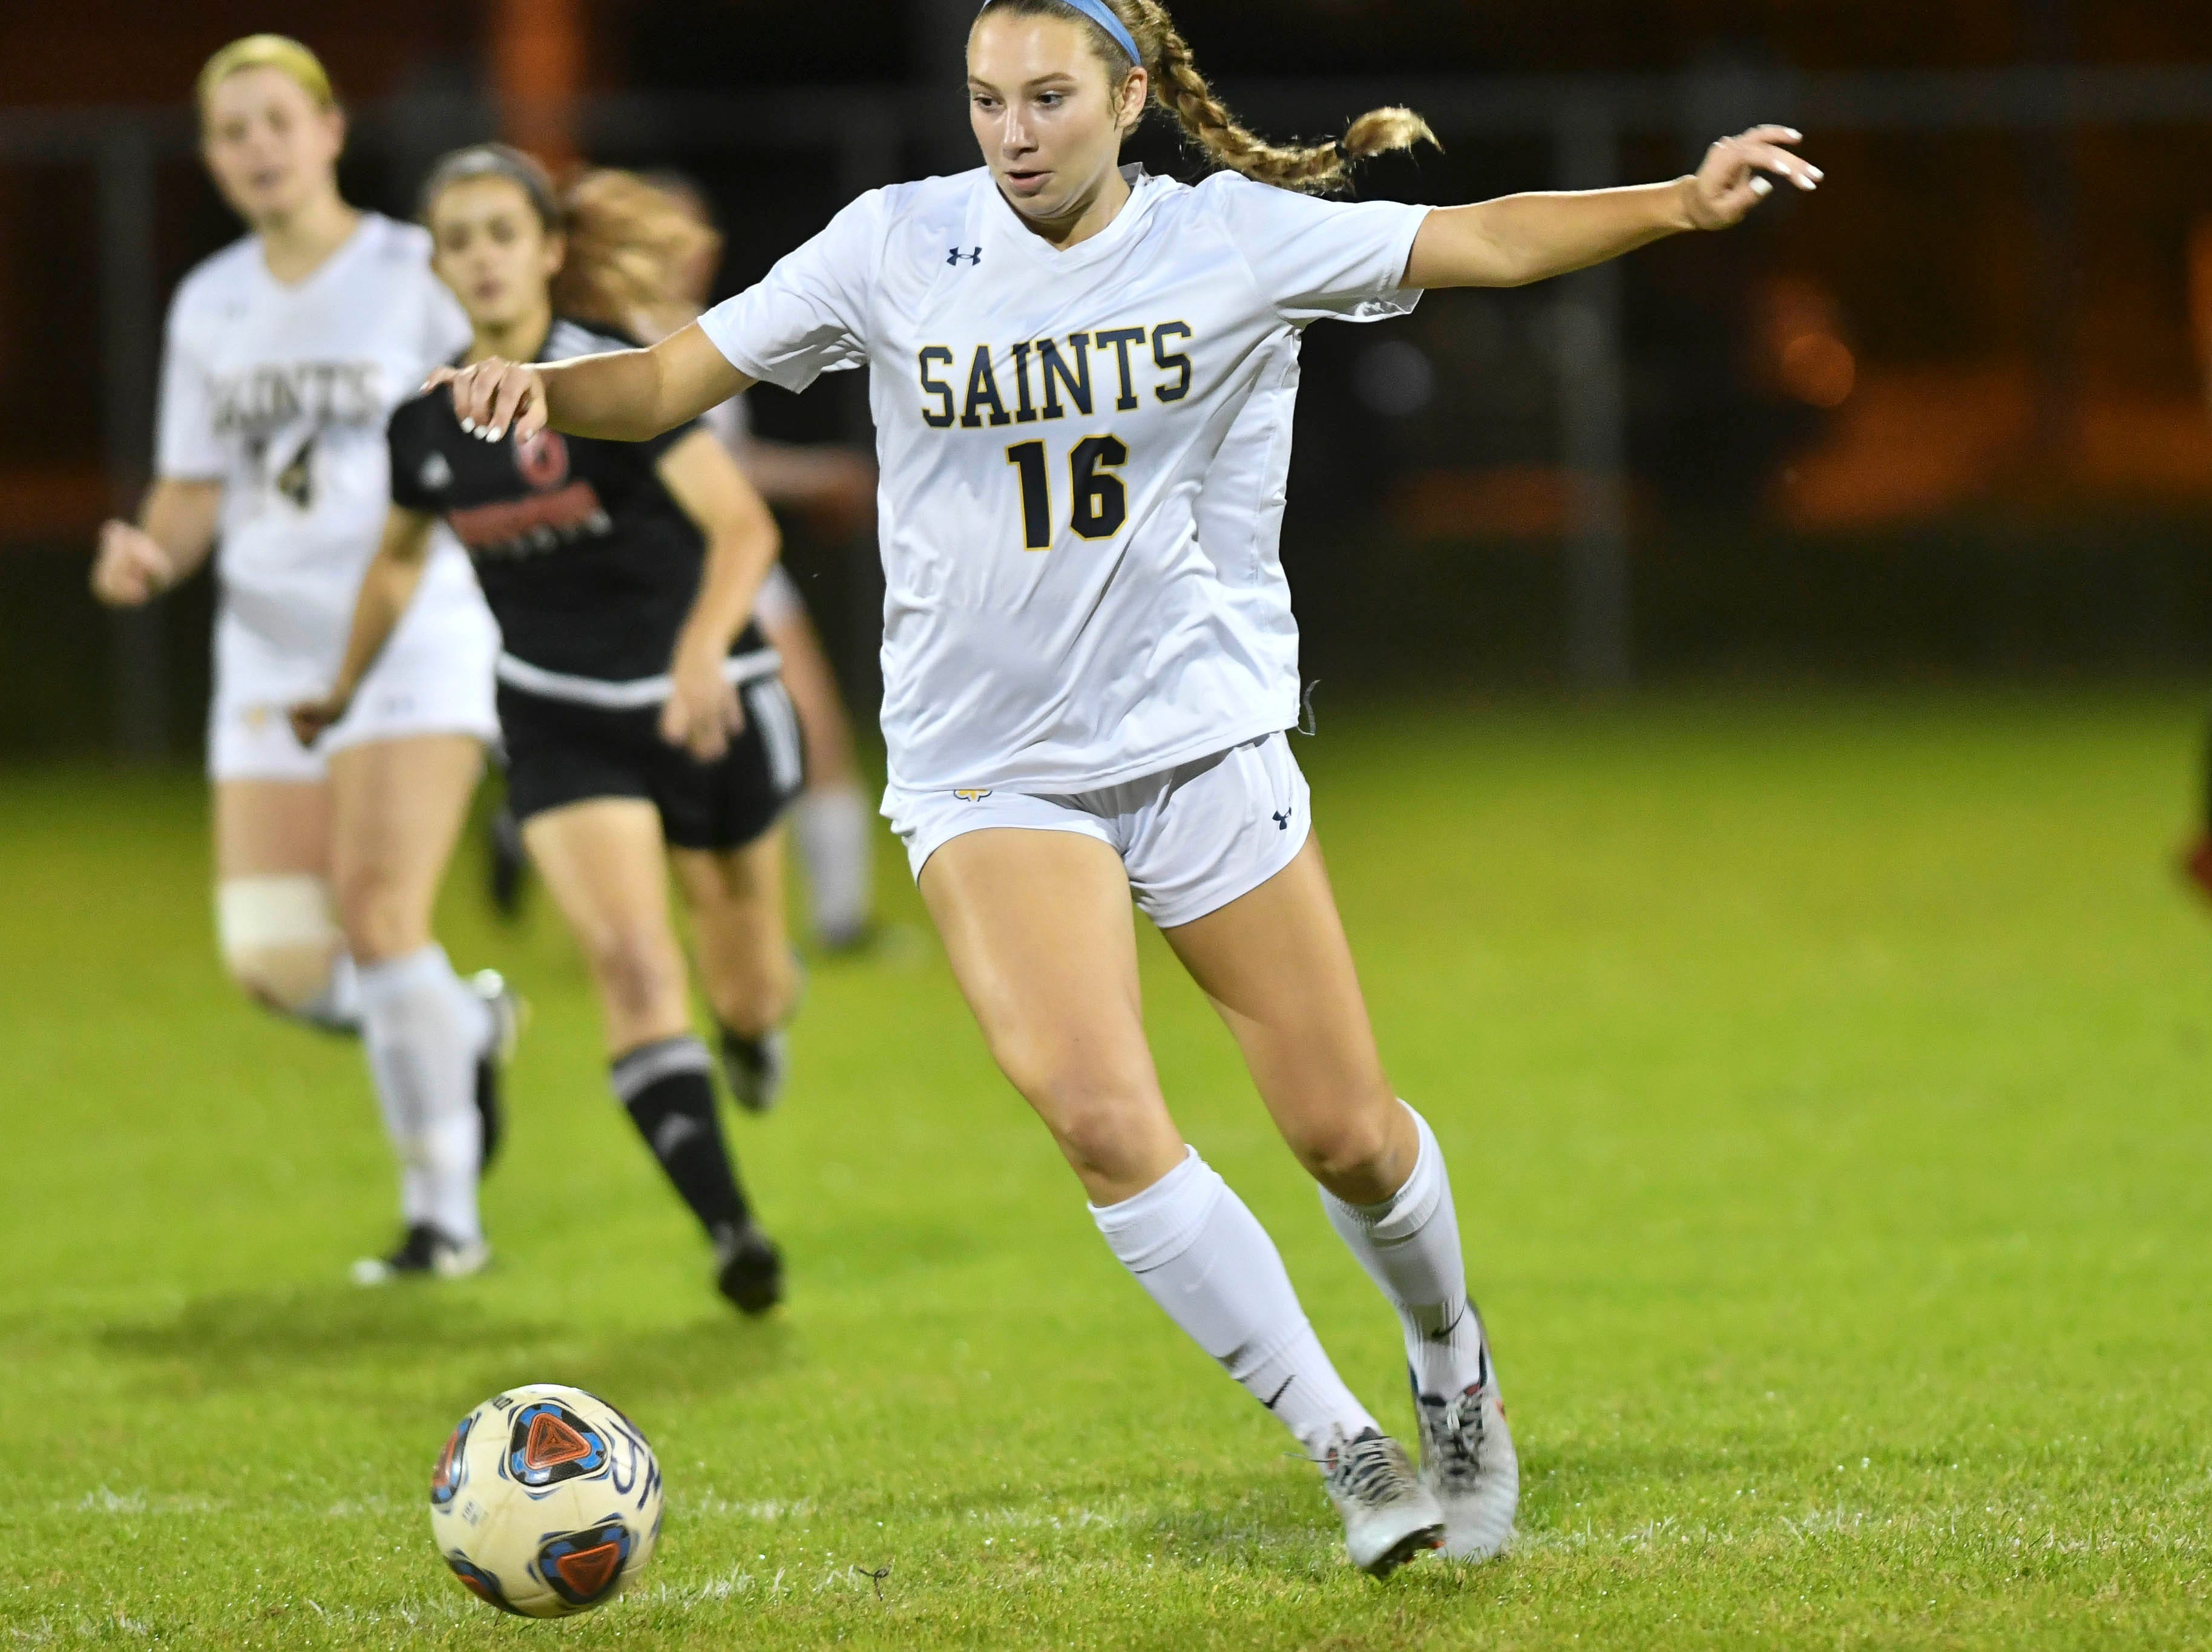 Trinity Prep's Phoebe Fowler drives downfield during Friday's Class 2A regional soccer semifinal at Edgewood Jr/Sr HIgh